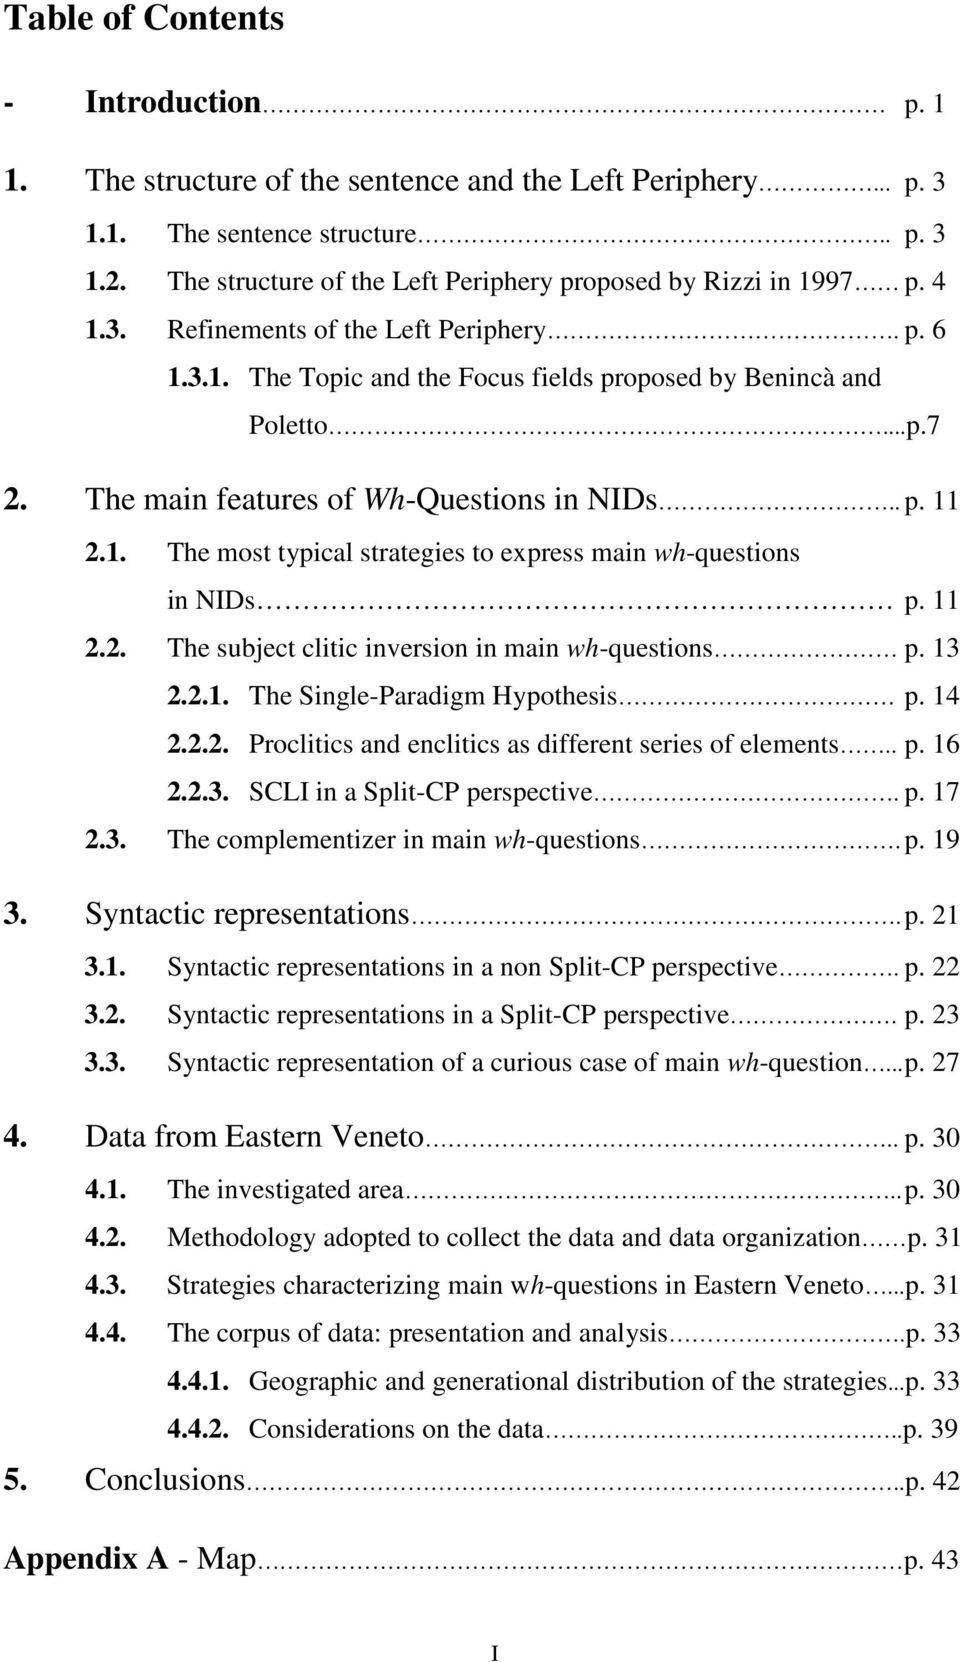 The main features of Wh-Questions in NIDs.. p. 11 2.1. The most typical strategies to express main wh-questions in NIDs p. 11 2.2. The subject clitic inversion in main wh-questions p. 13 2.2.1. The Single-Paradigm Hypothesis p.